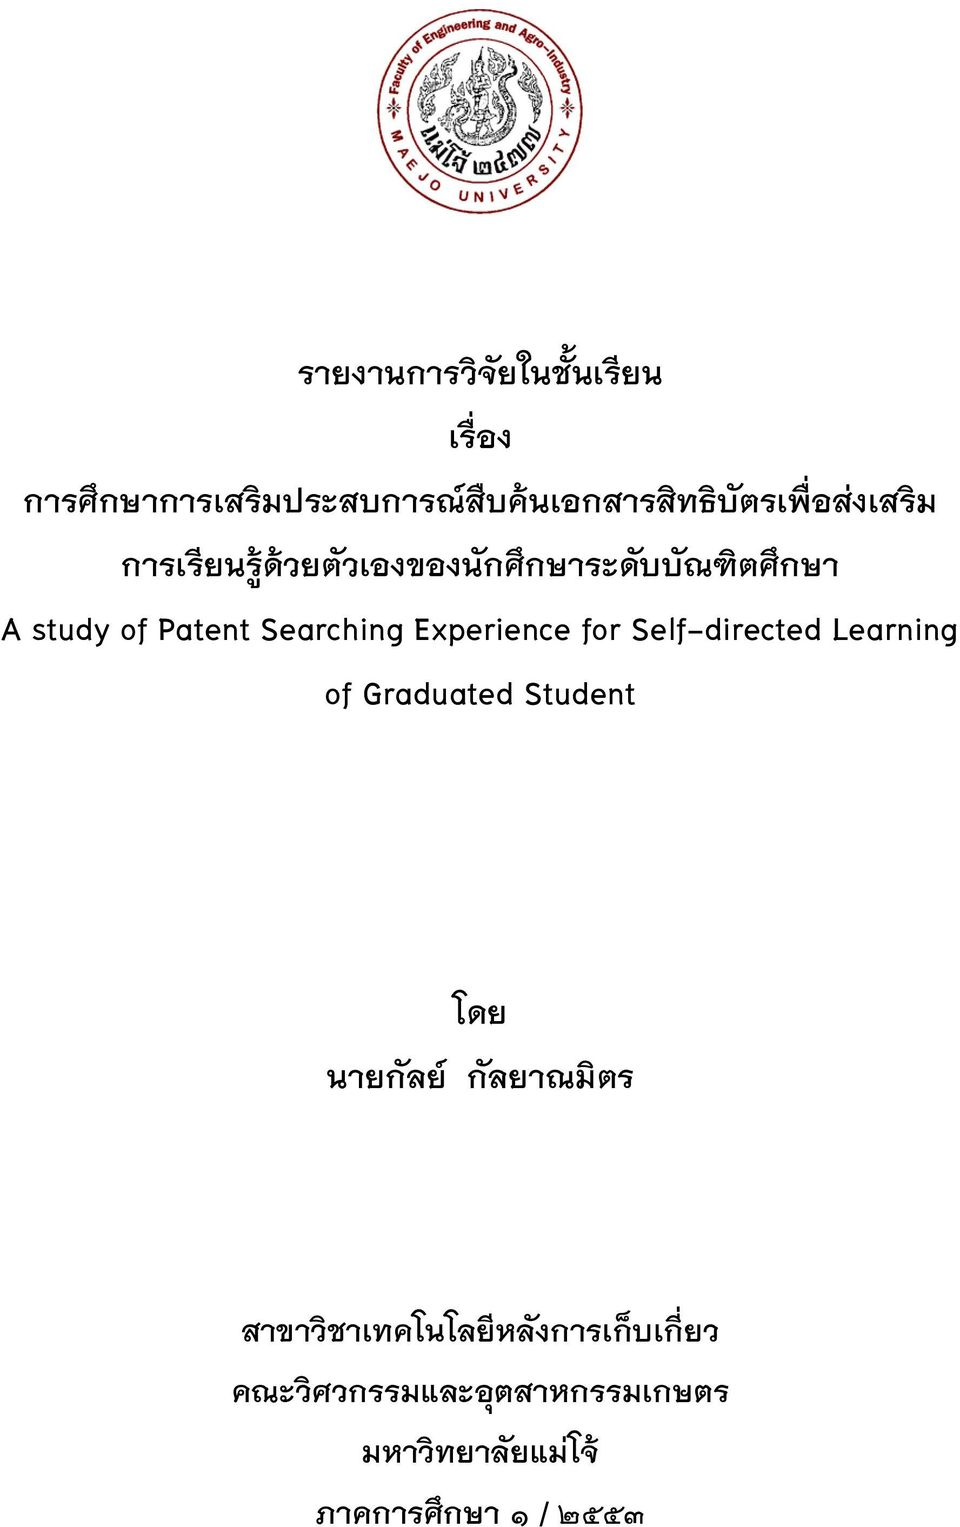 Experience for Self-directed Learning of Graduated Student โดย นายก ลย ก ลยาณม ตร สาขาว